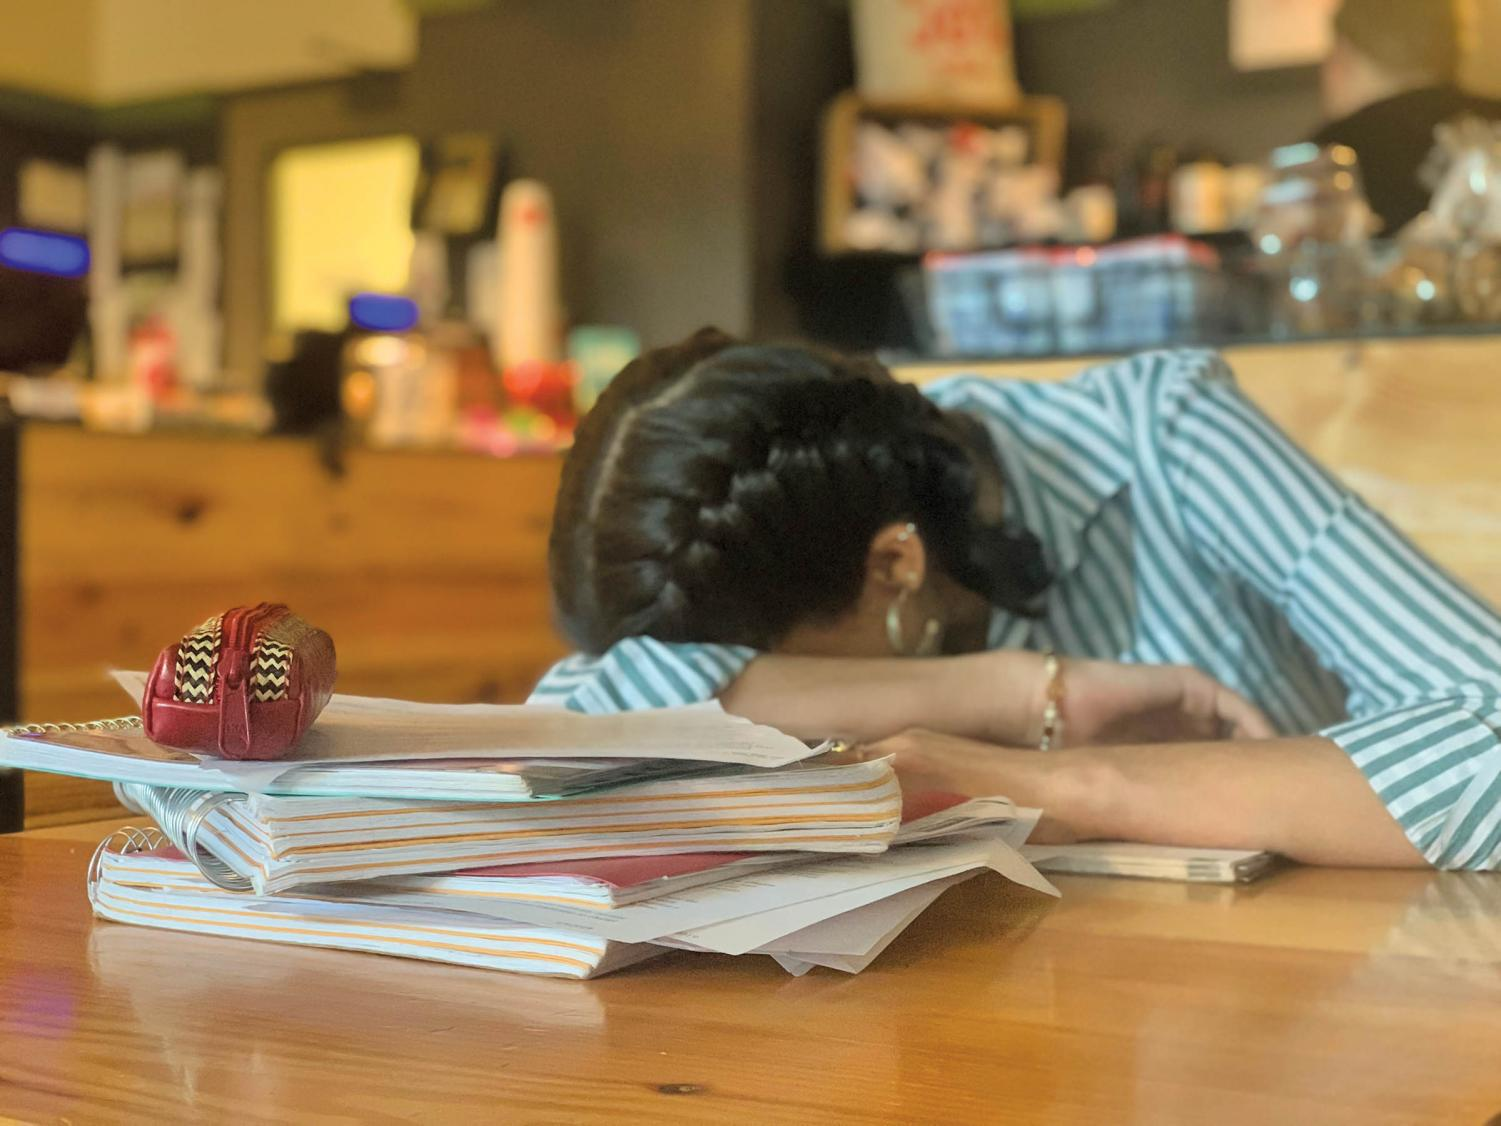 Students struggle to juggle coursework, jobs, internships, and involvement in student organizations. Stress levels increase as the semester comes to a close.